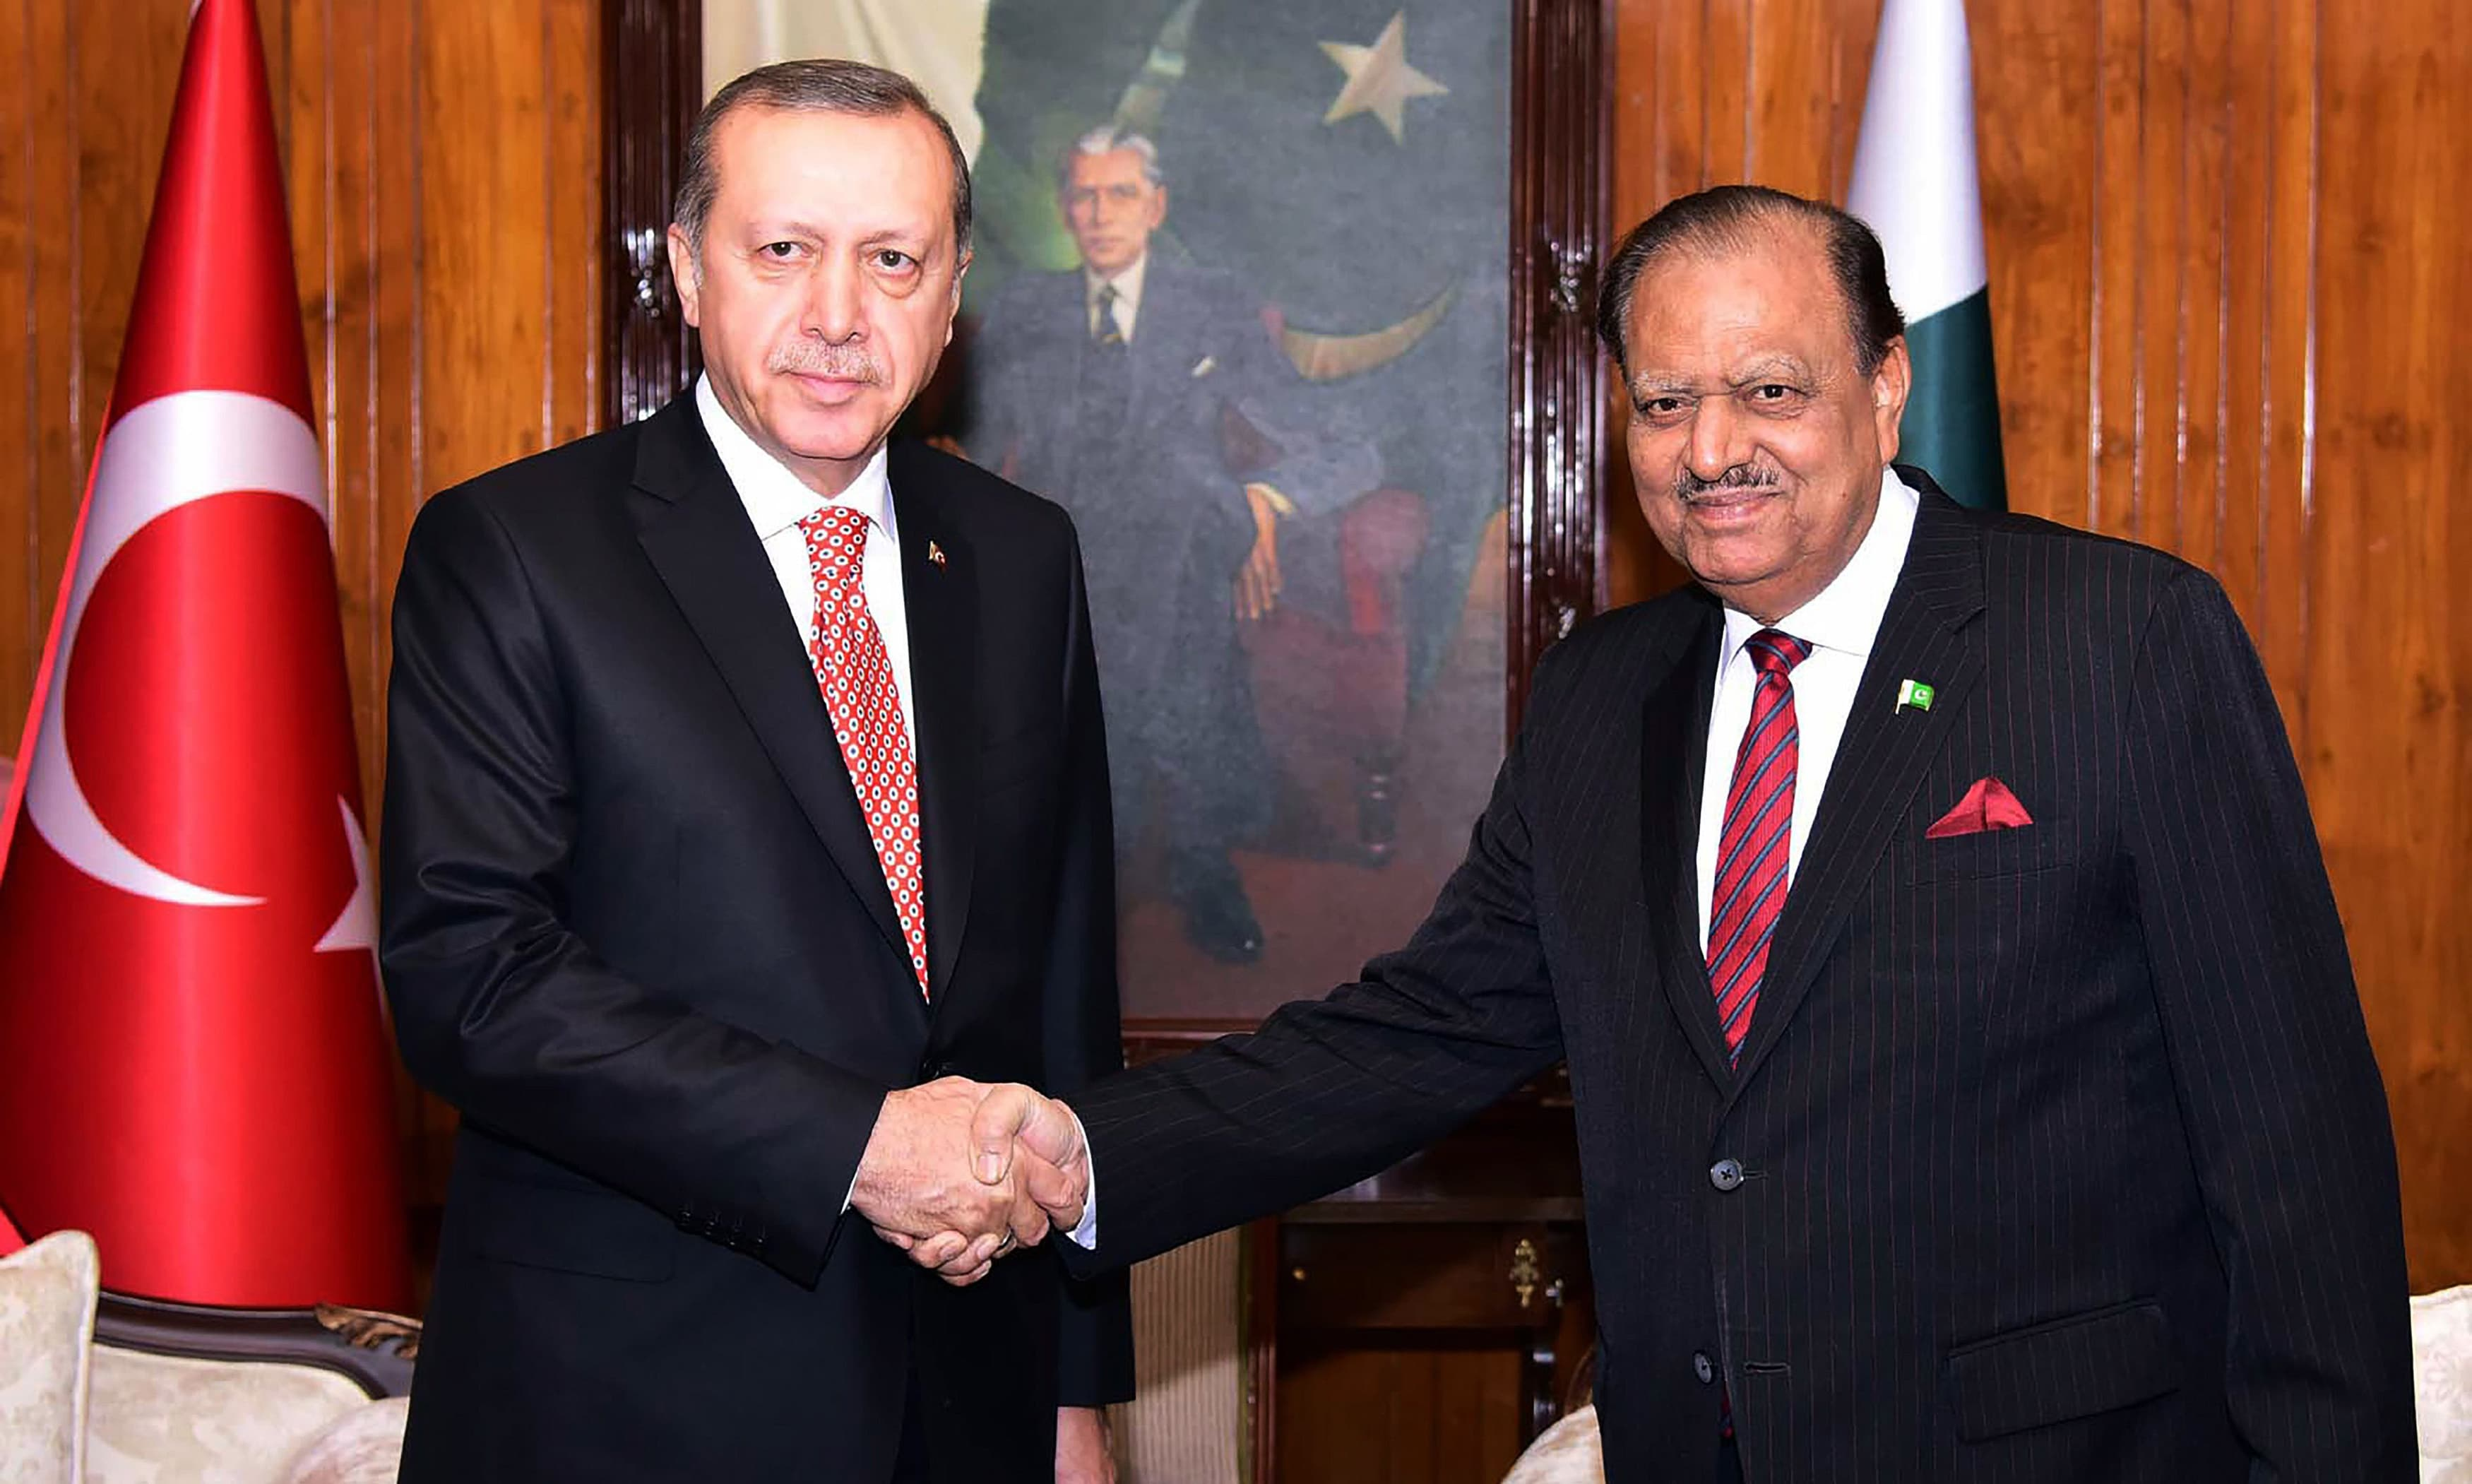 Mamnoon Hussain shakes hands with his Turkish counterpart Recep Tayyip Erdogan. ─AFP